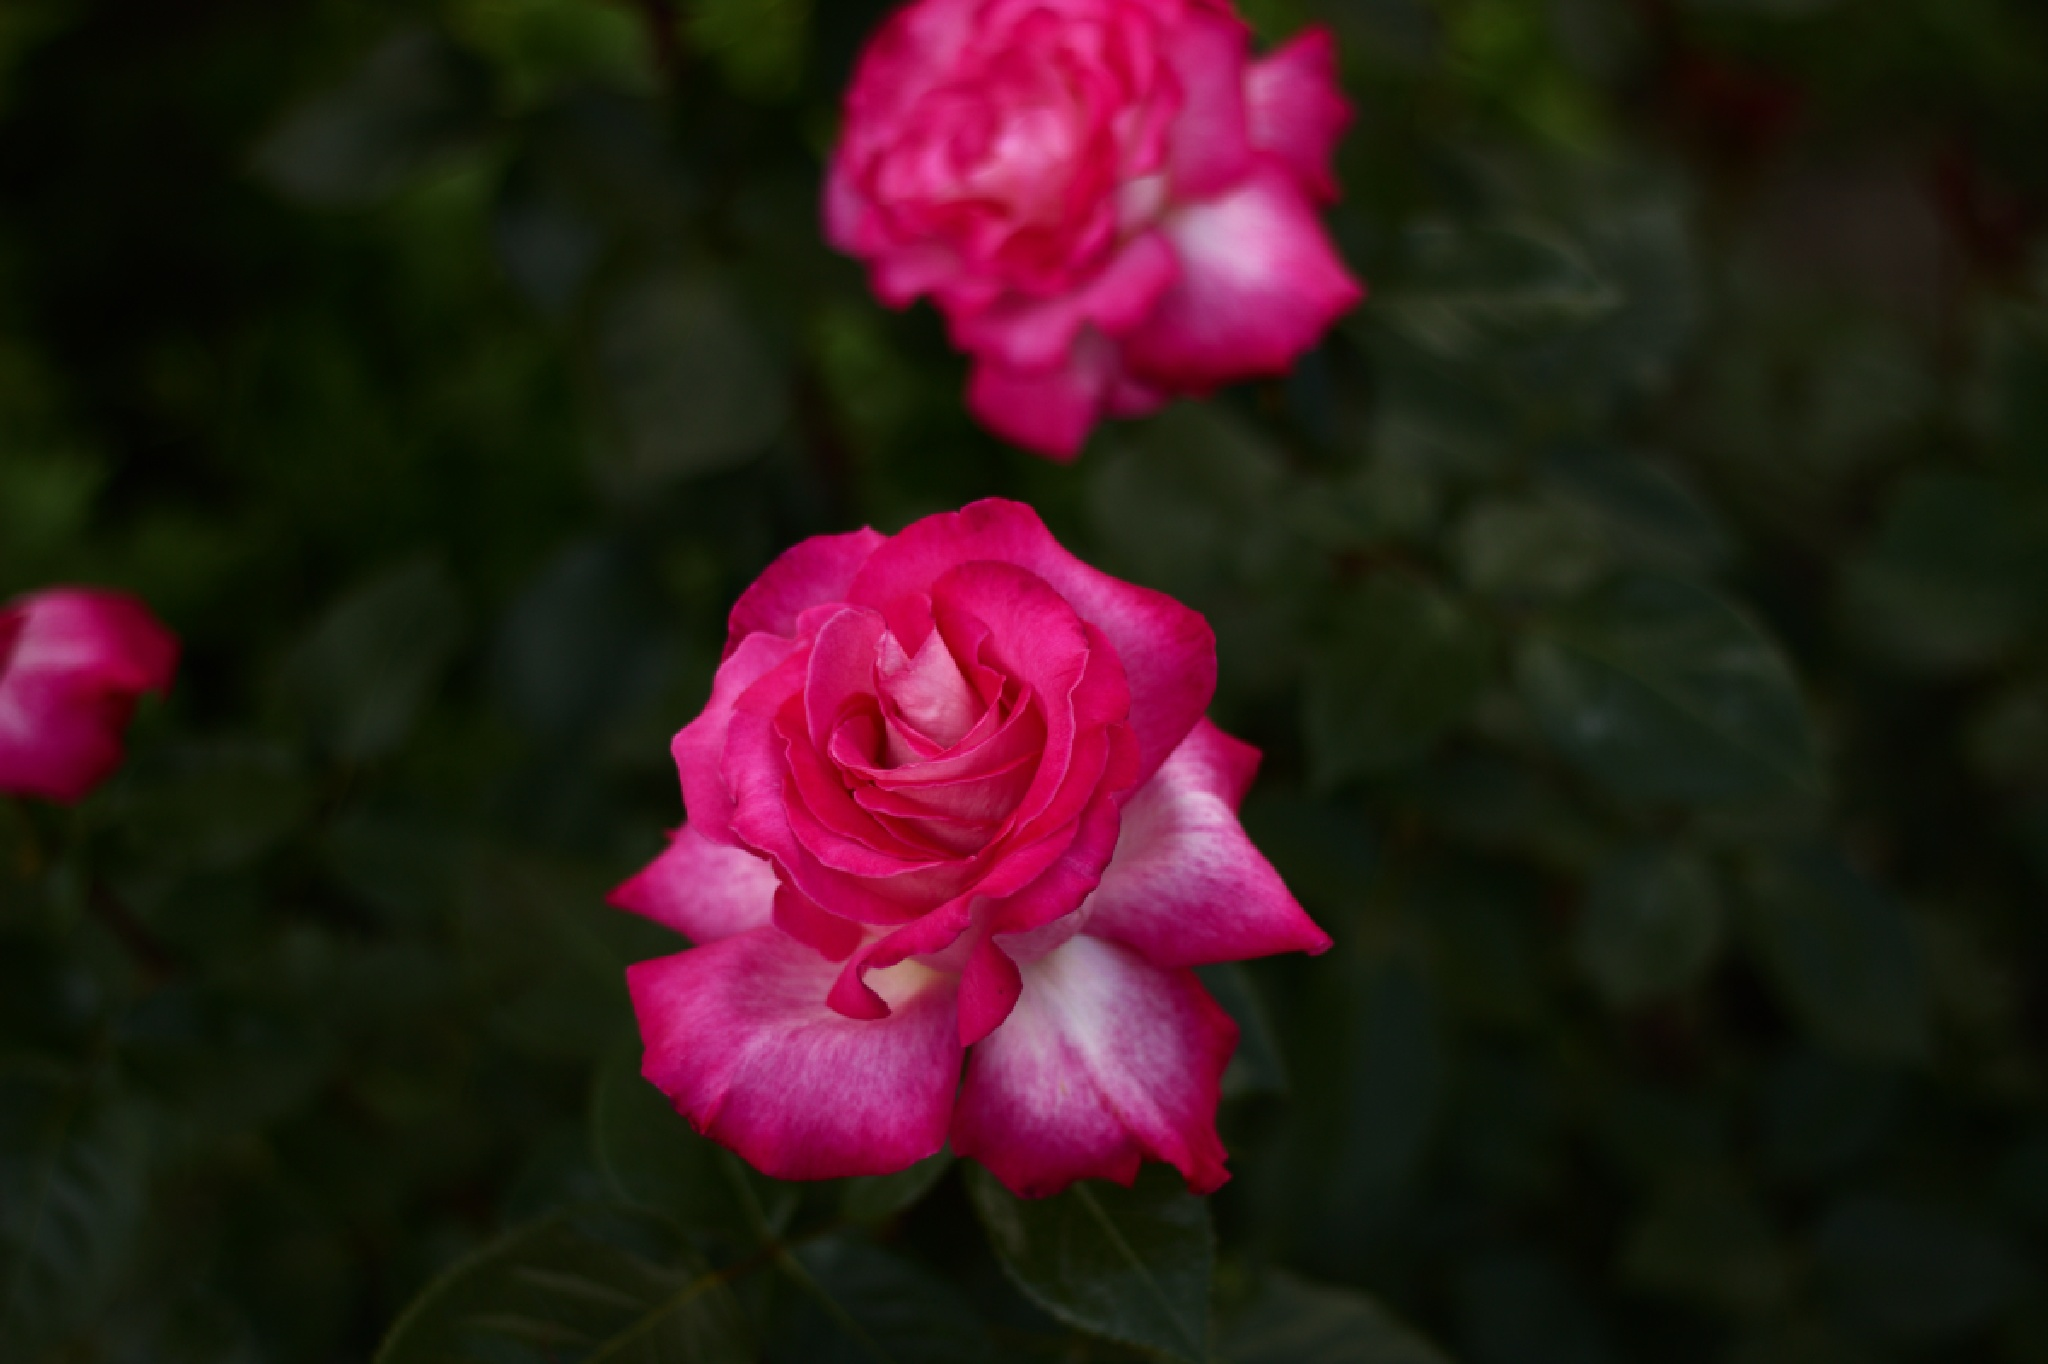 Rose by Dimitroff